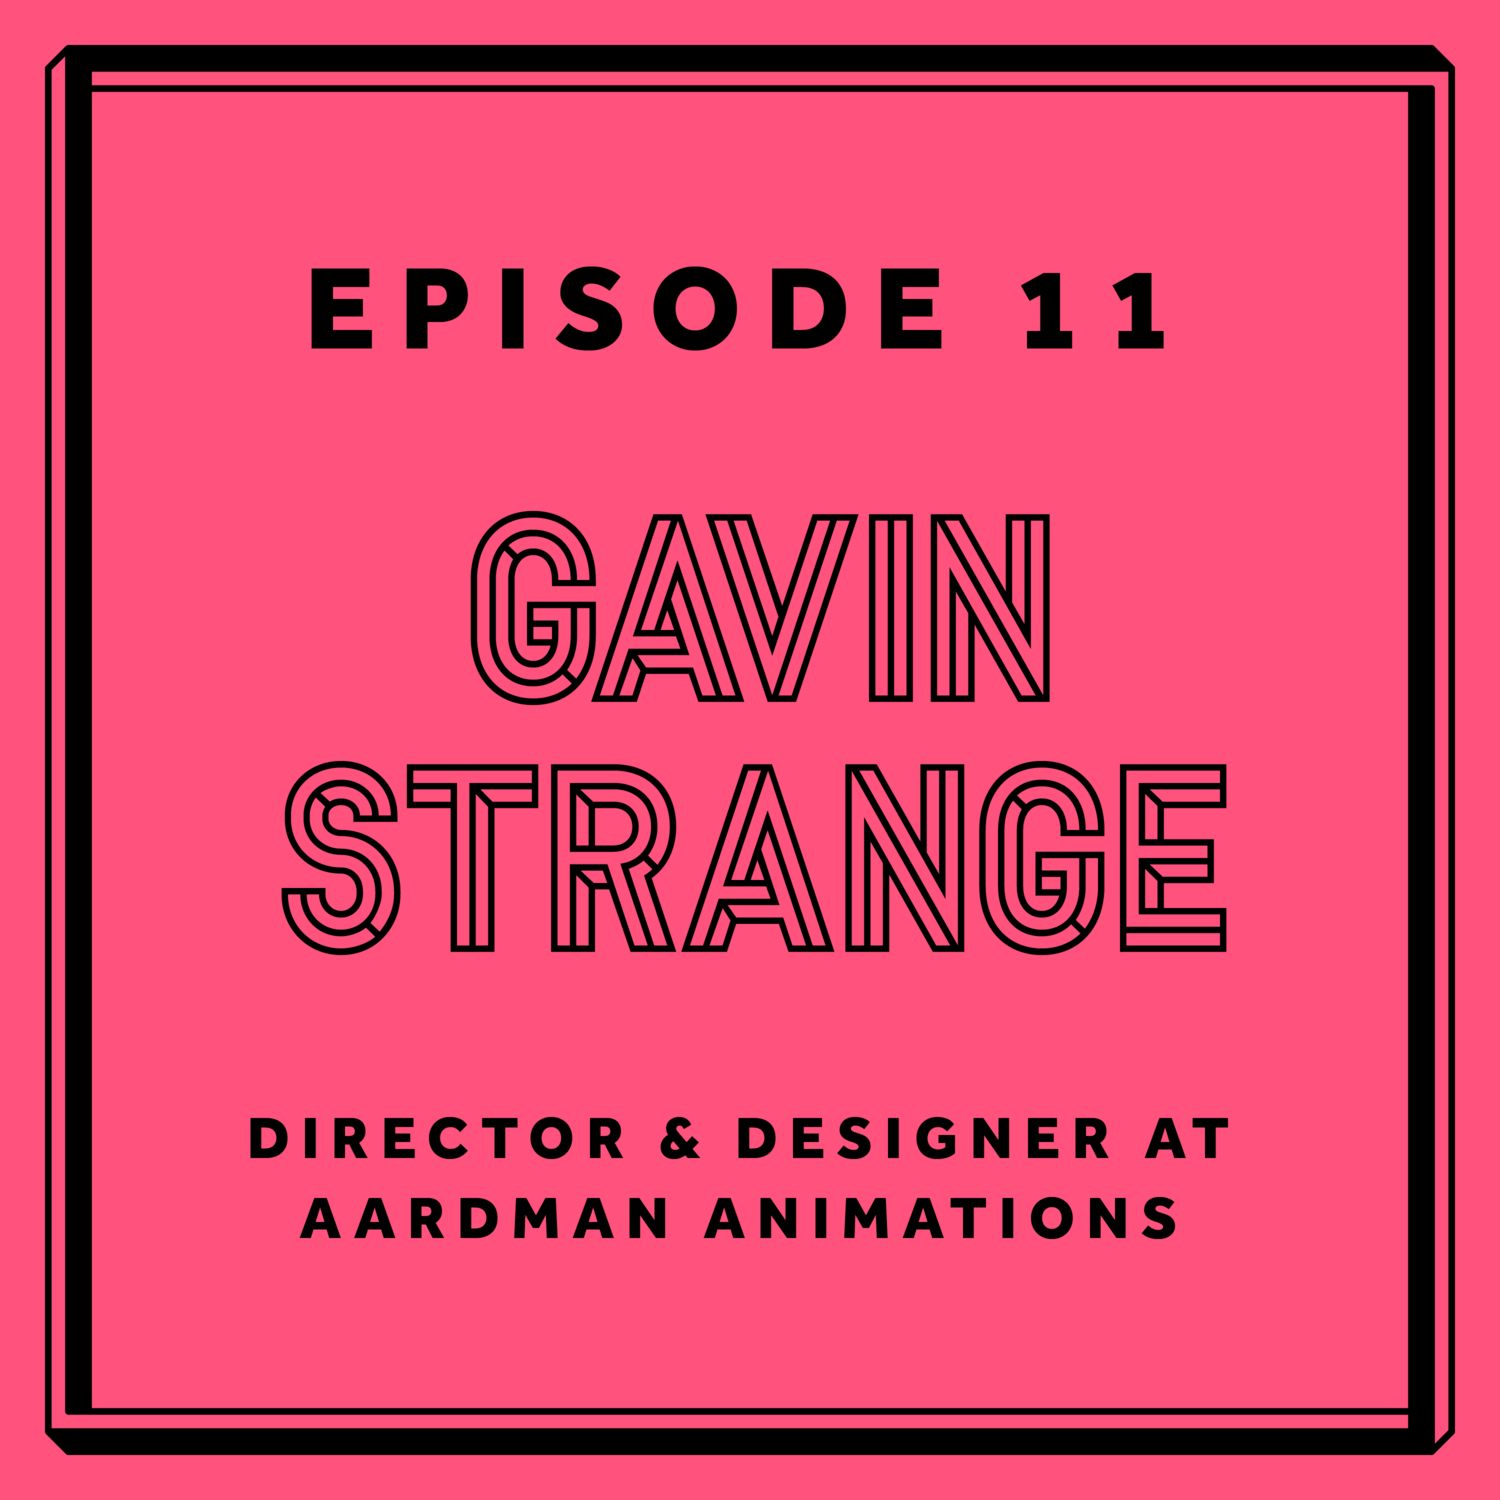 Episode 11: Gavin Strange - Director & Designer at Aardman Animations